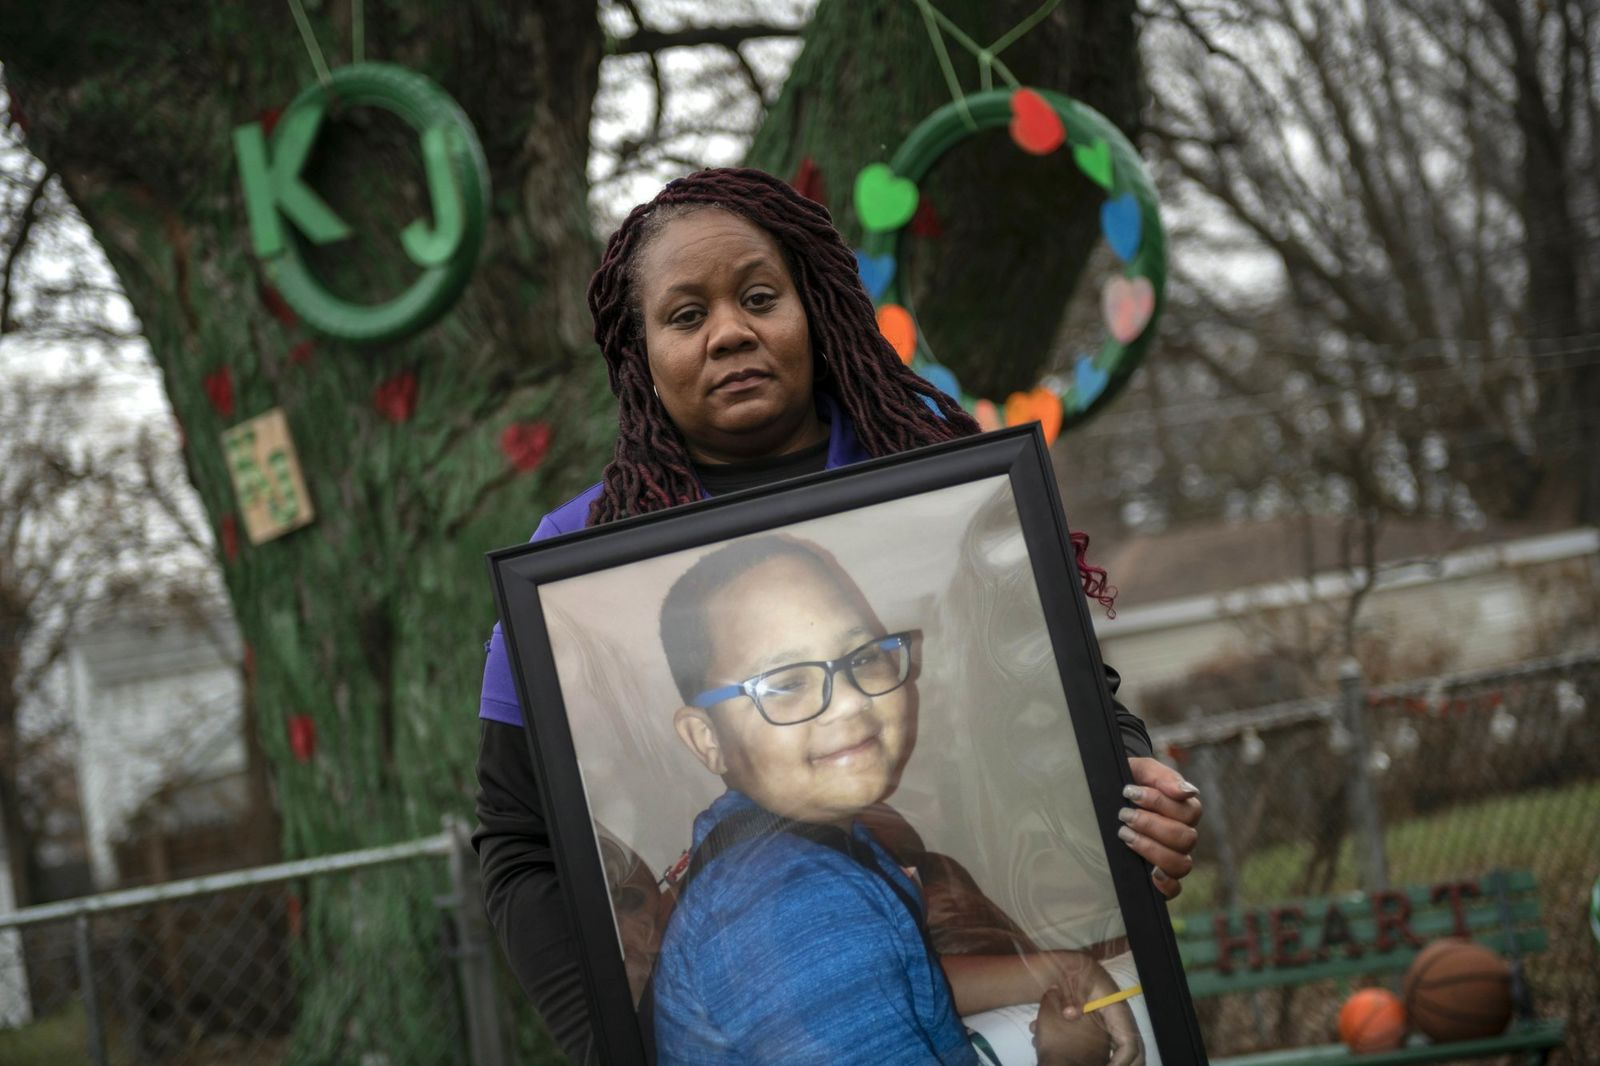 In this Dec. 3, 2018 photo, LaSondra Singleton holds a photo of her son Kenneth Gross Jr. while standing in front of a tree that was decorated in her son's honor at her Warren, Mich., home. (David Guralnick/Detroit News via AP)